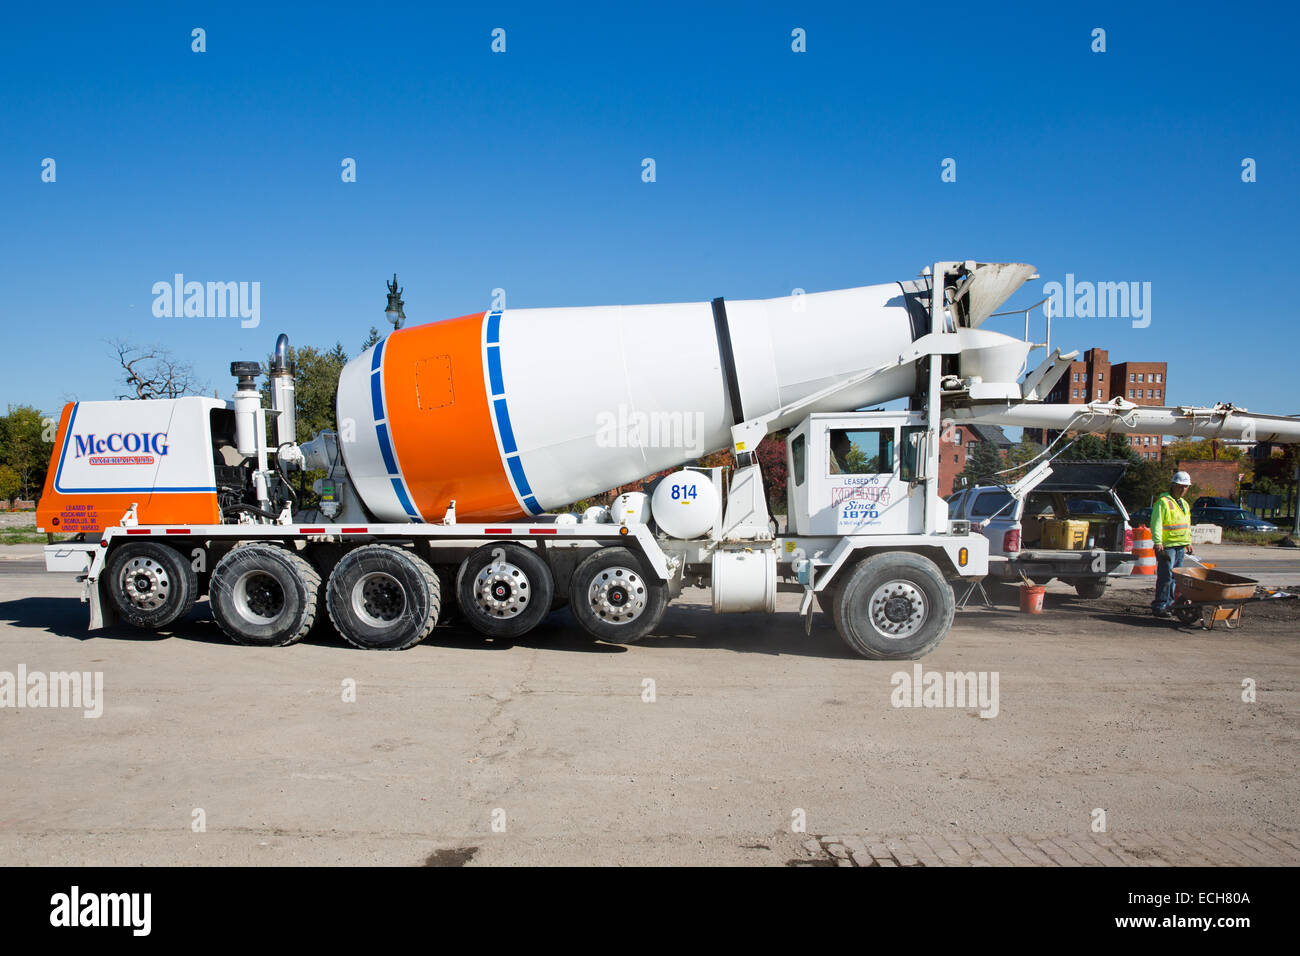 Phoenix Front Discharge Concrete Mixer on the M-1 Rail streetcar project, Detroit, MI, USA, Oct. 23, 2014. - Stock Image